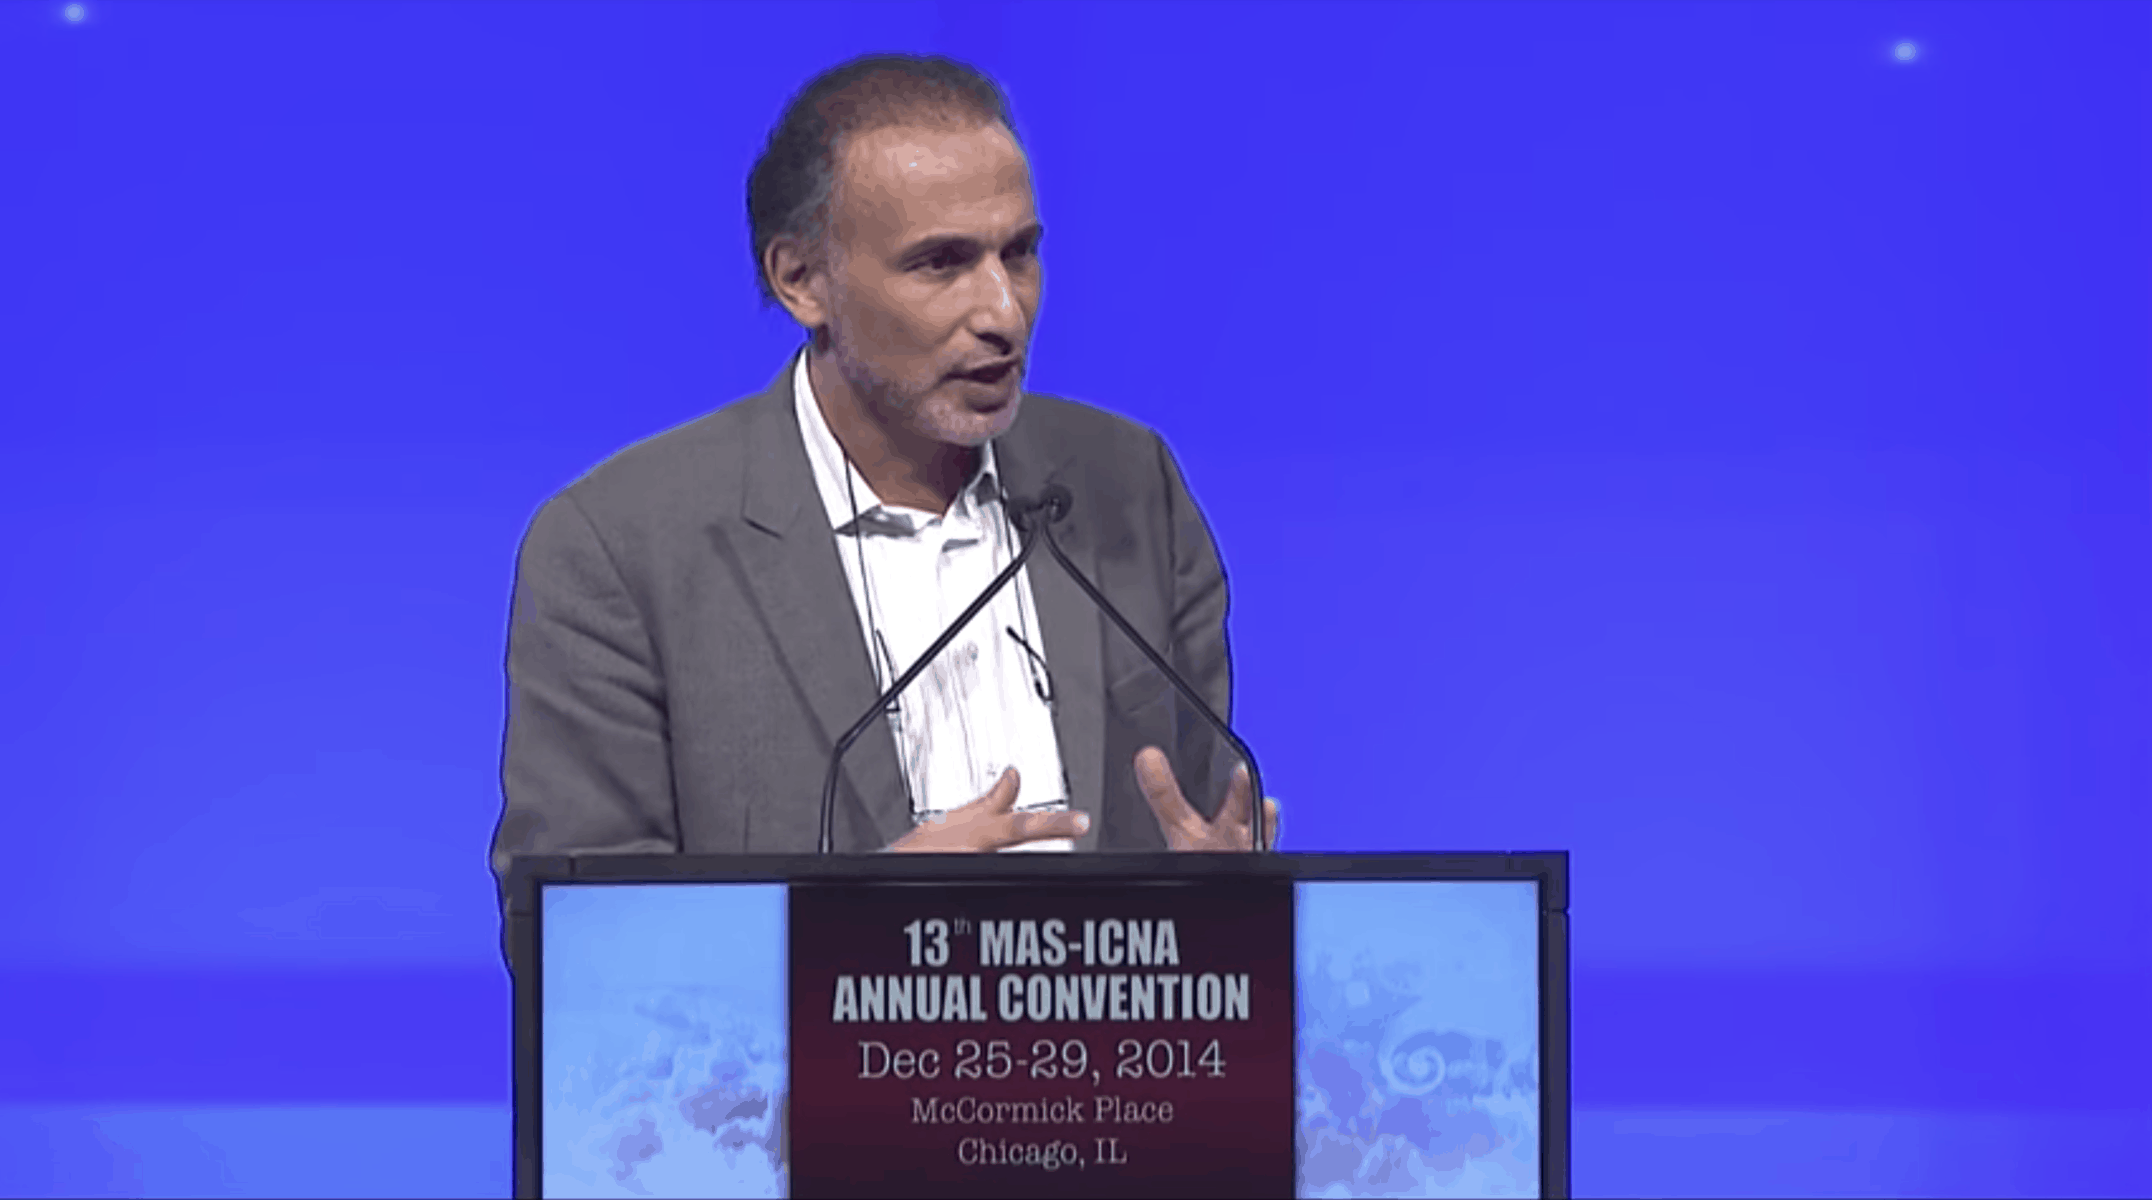 Tariq Ramadan – Jihad: The Misunderstood and Misused